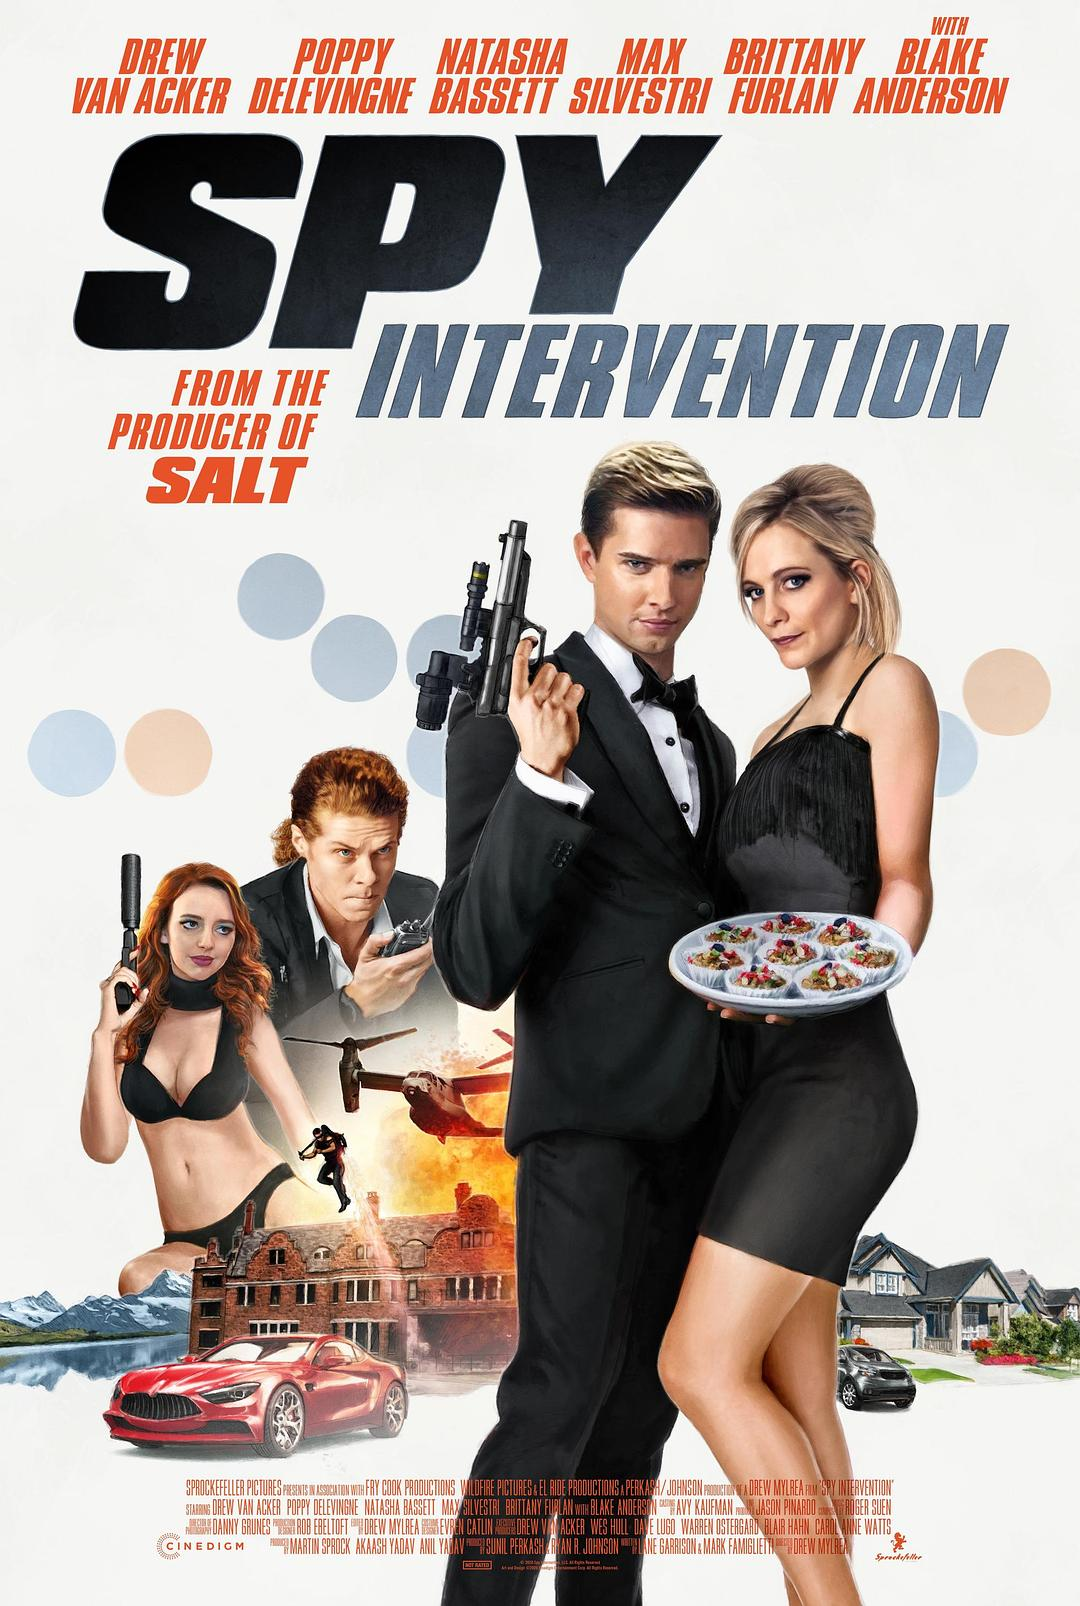 悠悠MP4_MP4电影下载_间谍干涉/间谍本色 Spy.Intervention.2020.720p.AMZN.WEBRip.DDP5.1.x264-NTG 2.36GB